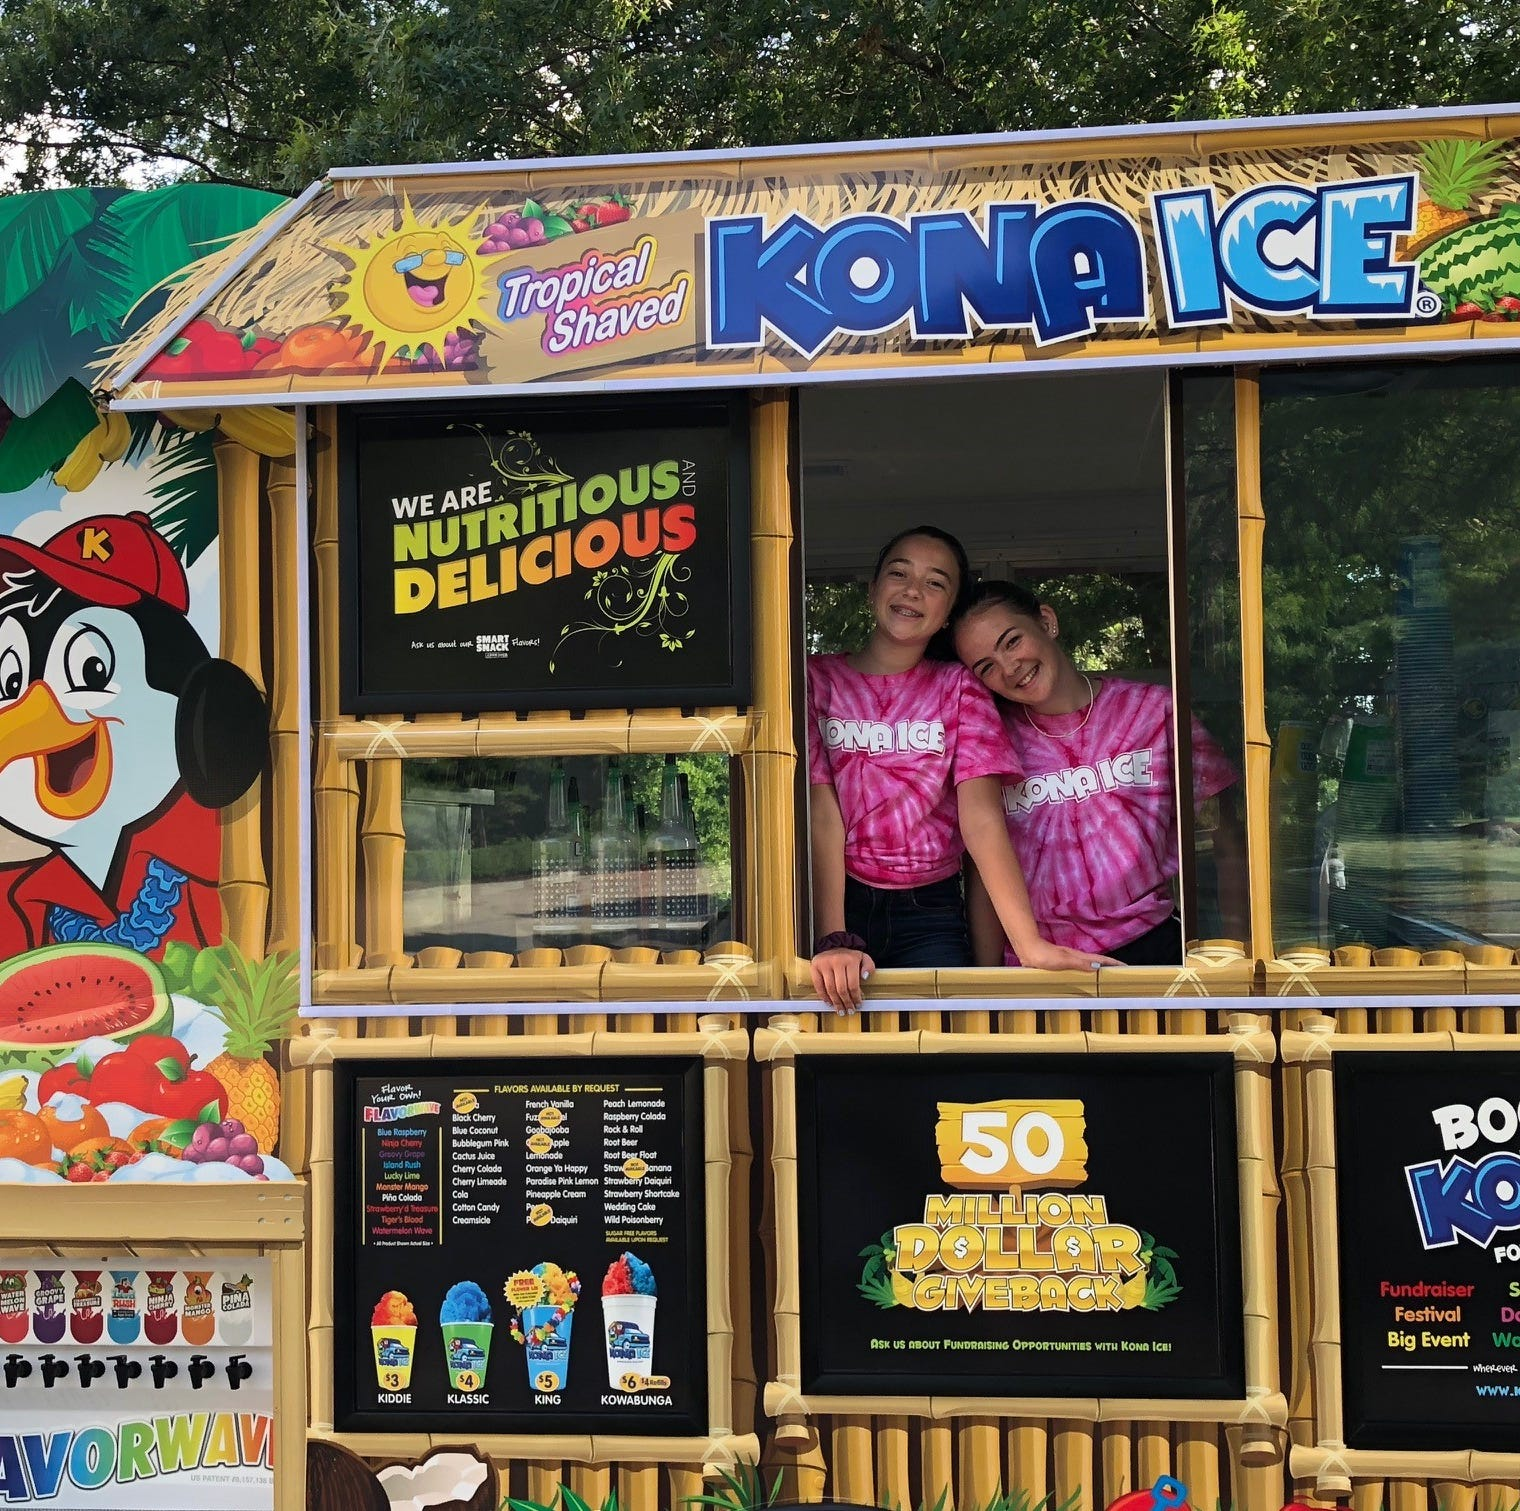 Whole family on board with launch of Kona Ice truck in Haddonfield